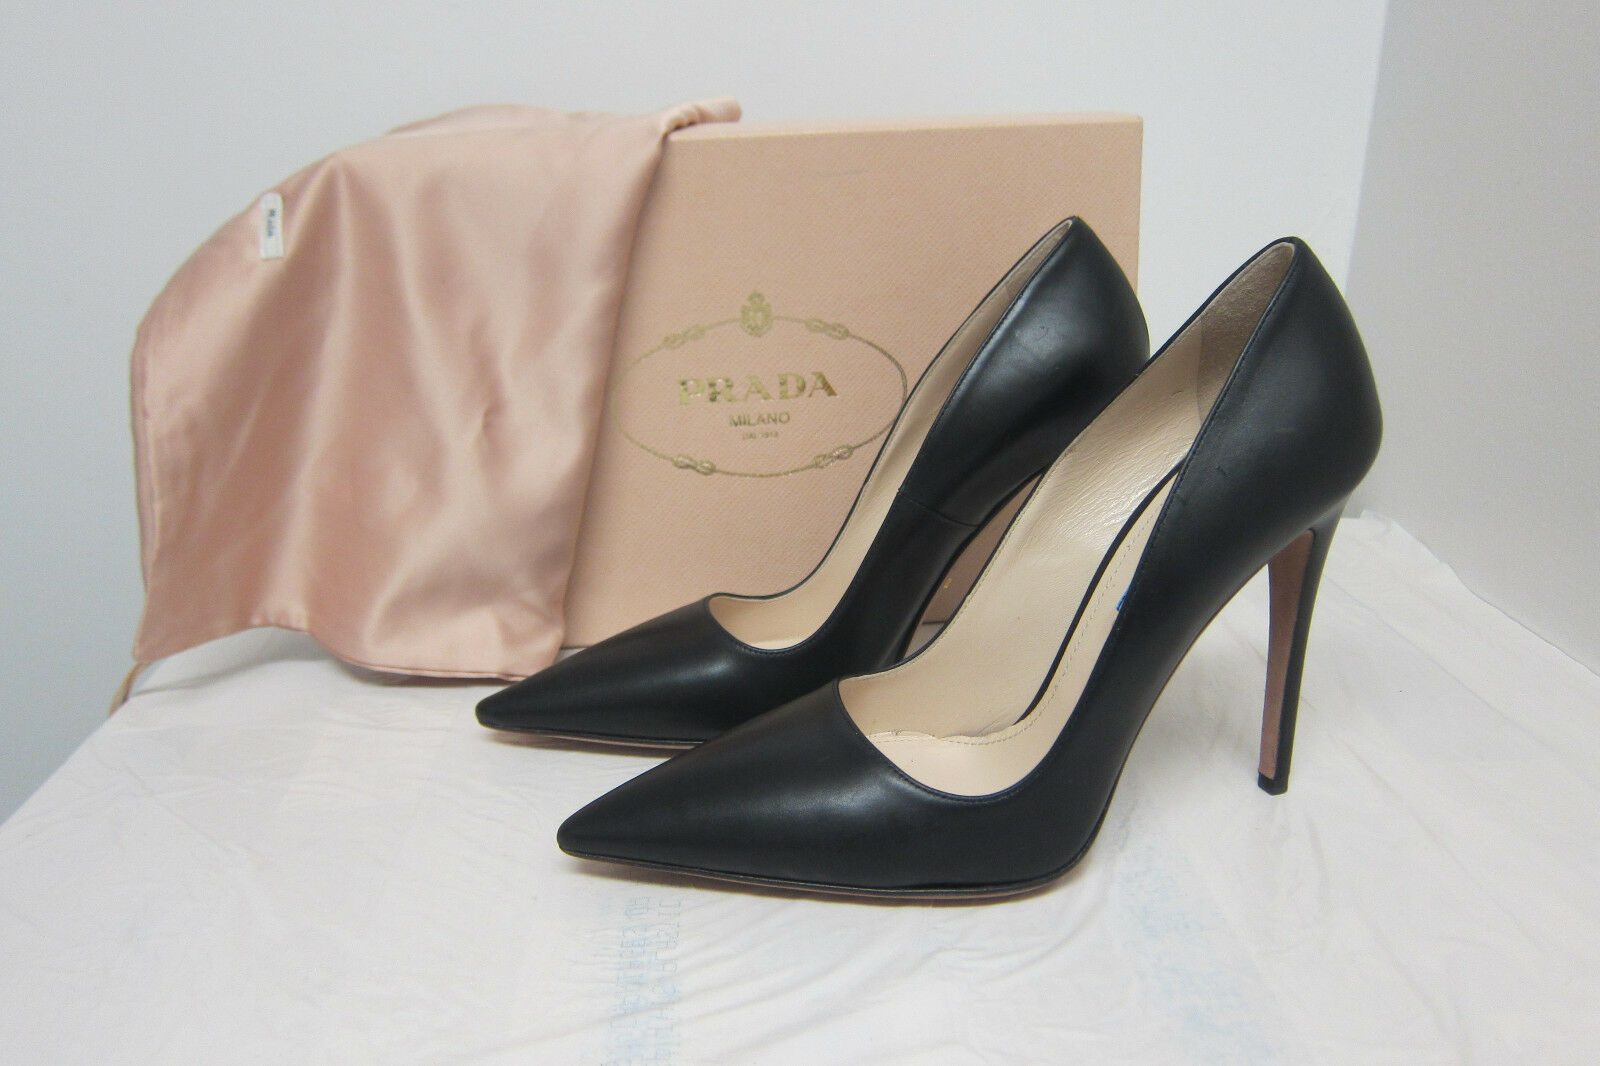 PRADA cuir point-toe escarpins taille  40 10 Couleur Couleur Couleur  Noir Original   650.00 20f7cd